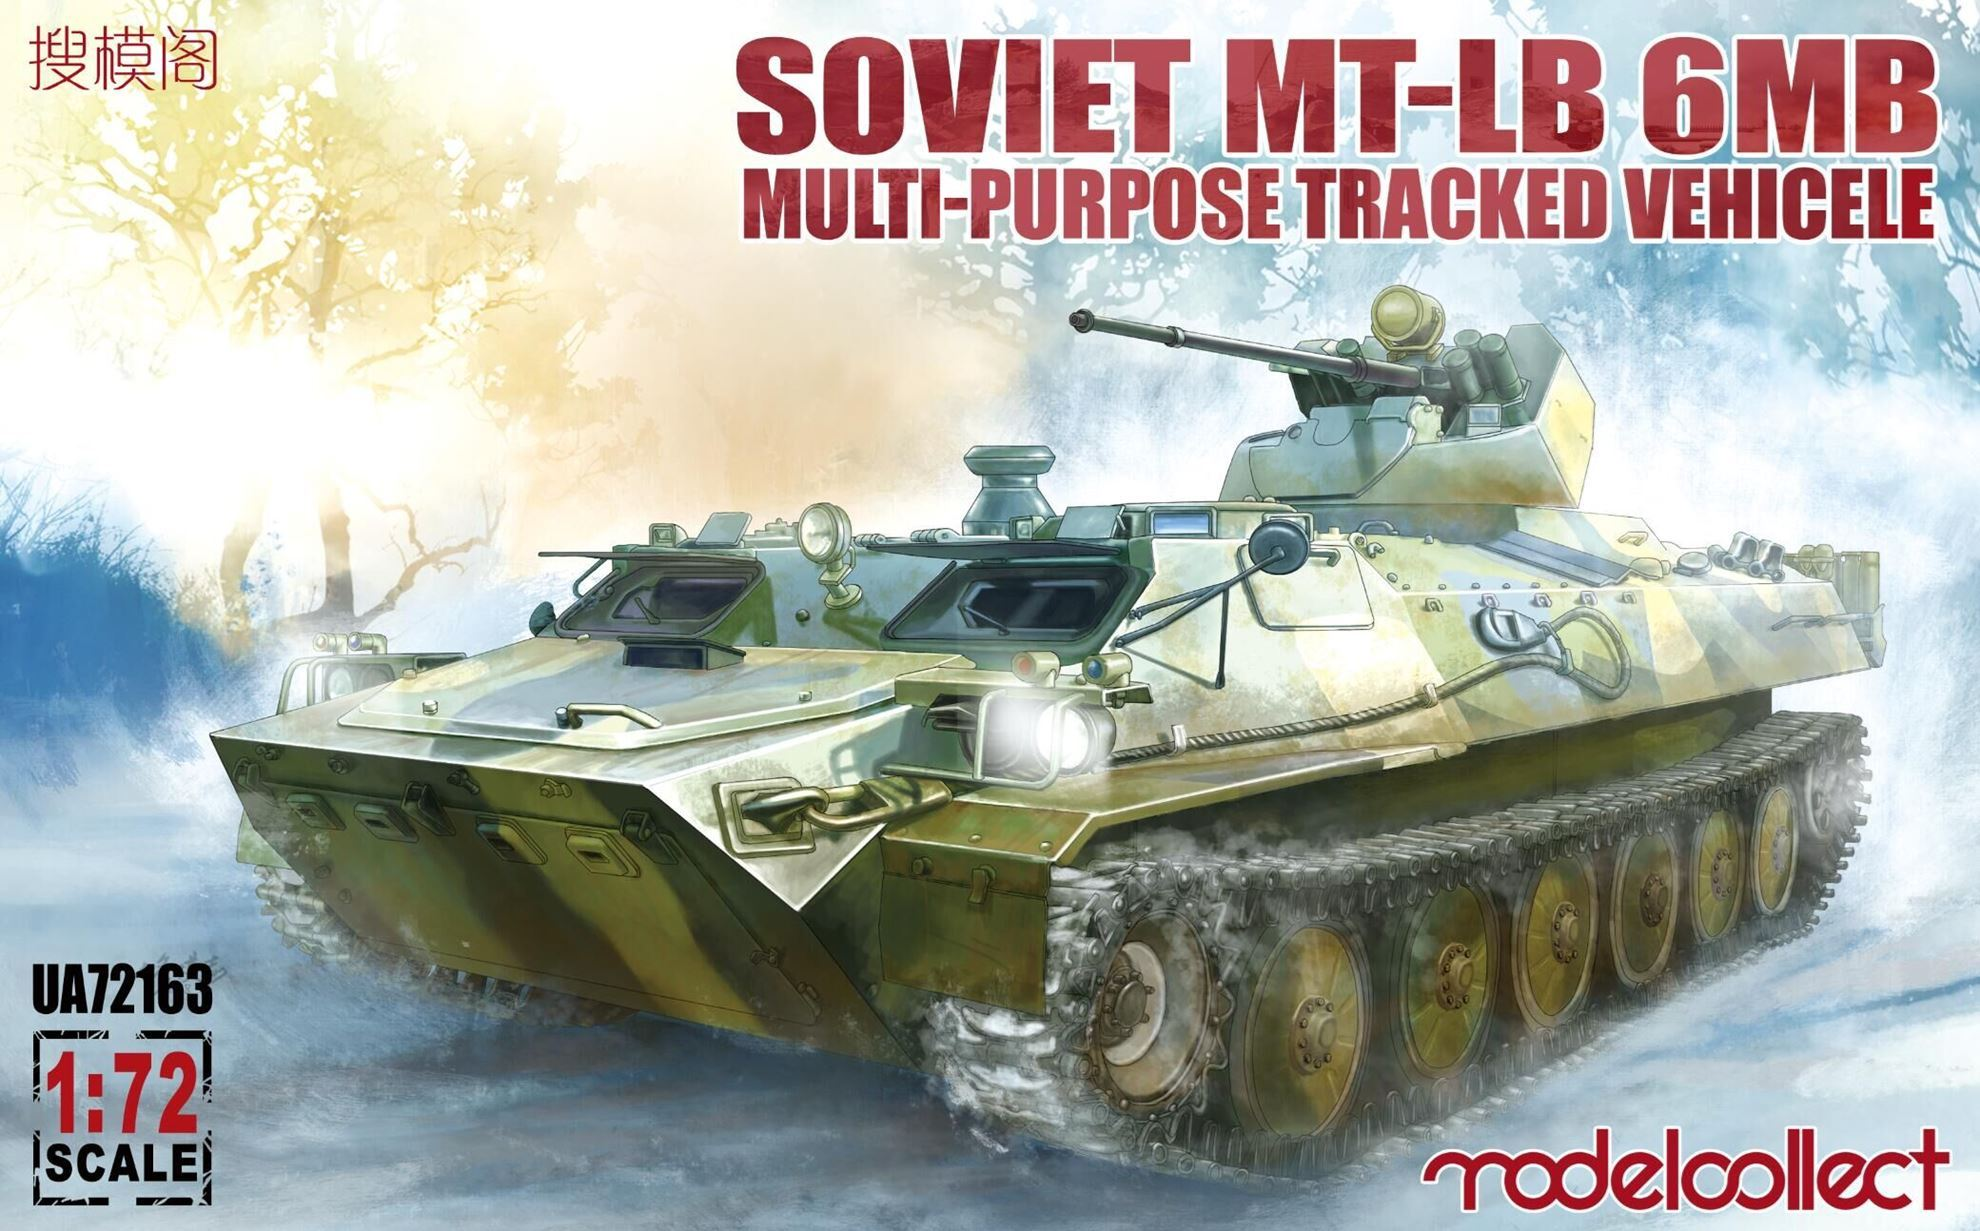 Soviet MT-LB 6MB Multi-purpose Tracked Vehicle